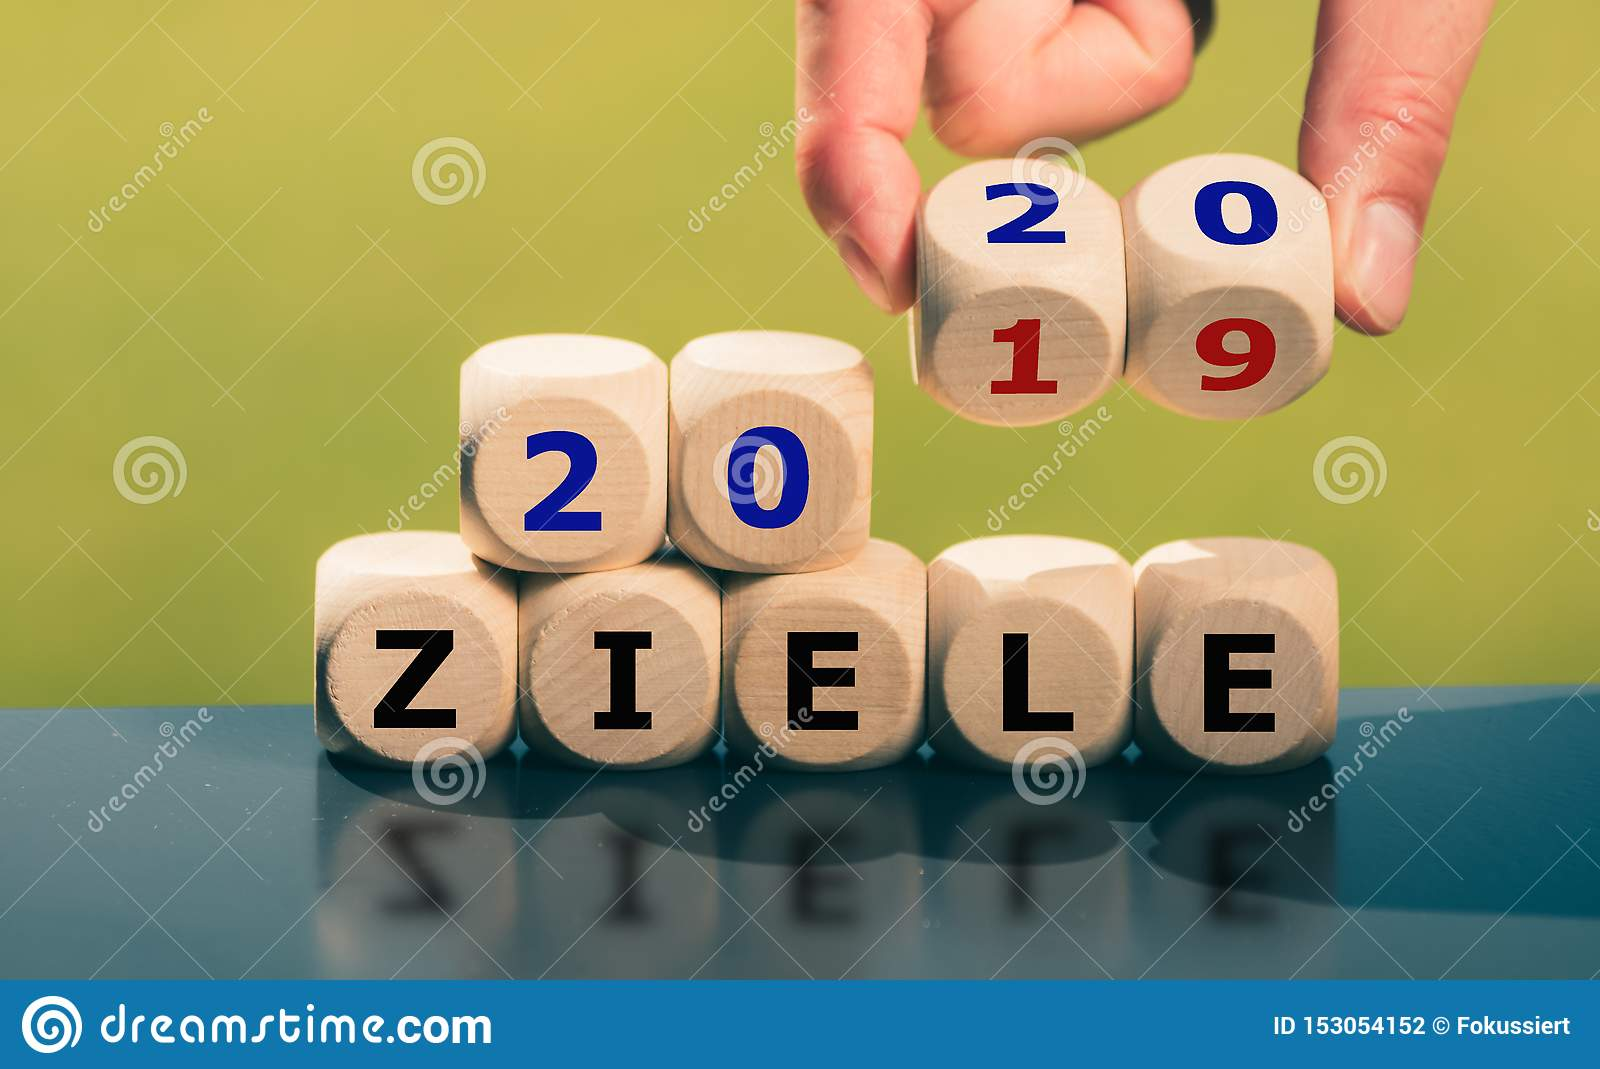 Goals for the year 2020. Hand turns dice and changes the German expression `2019 ziele` goals to `2020 Ziele`